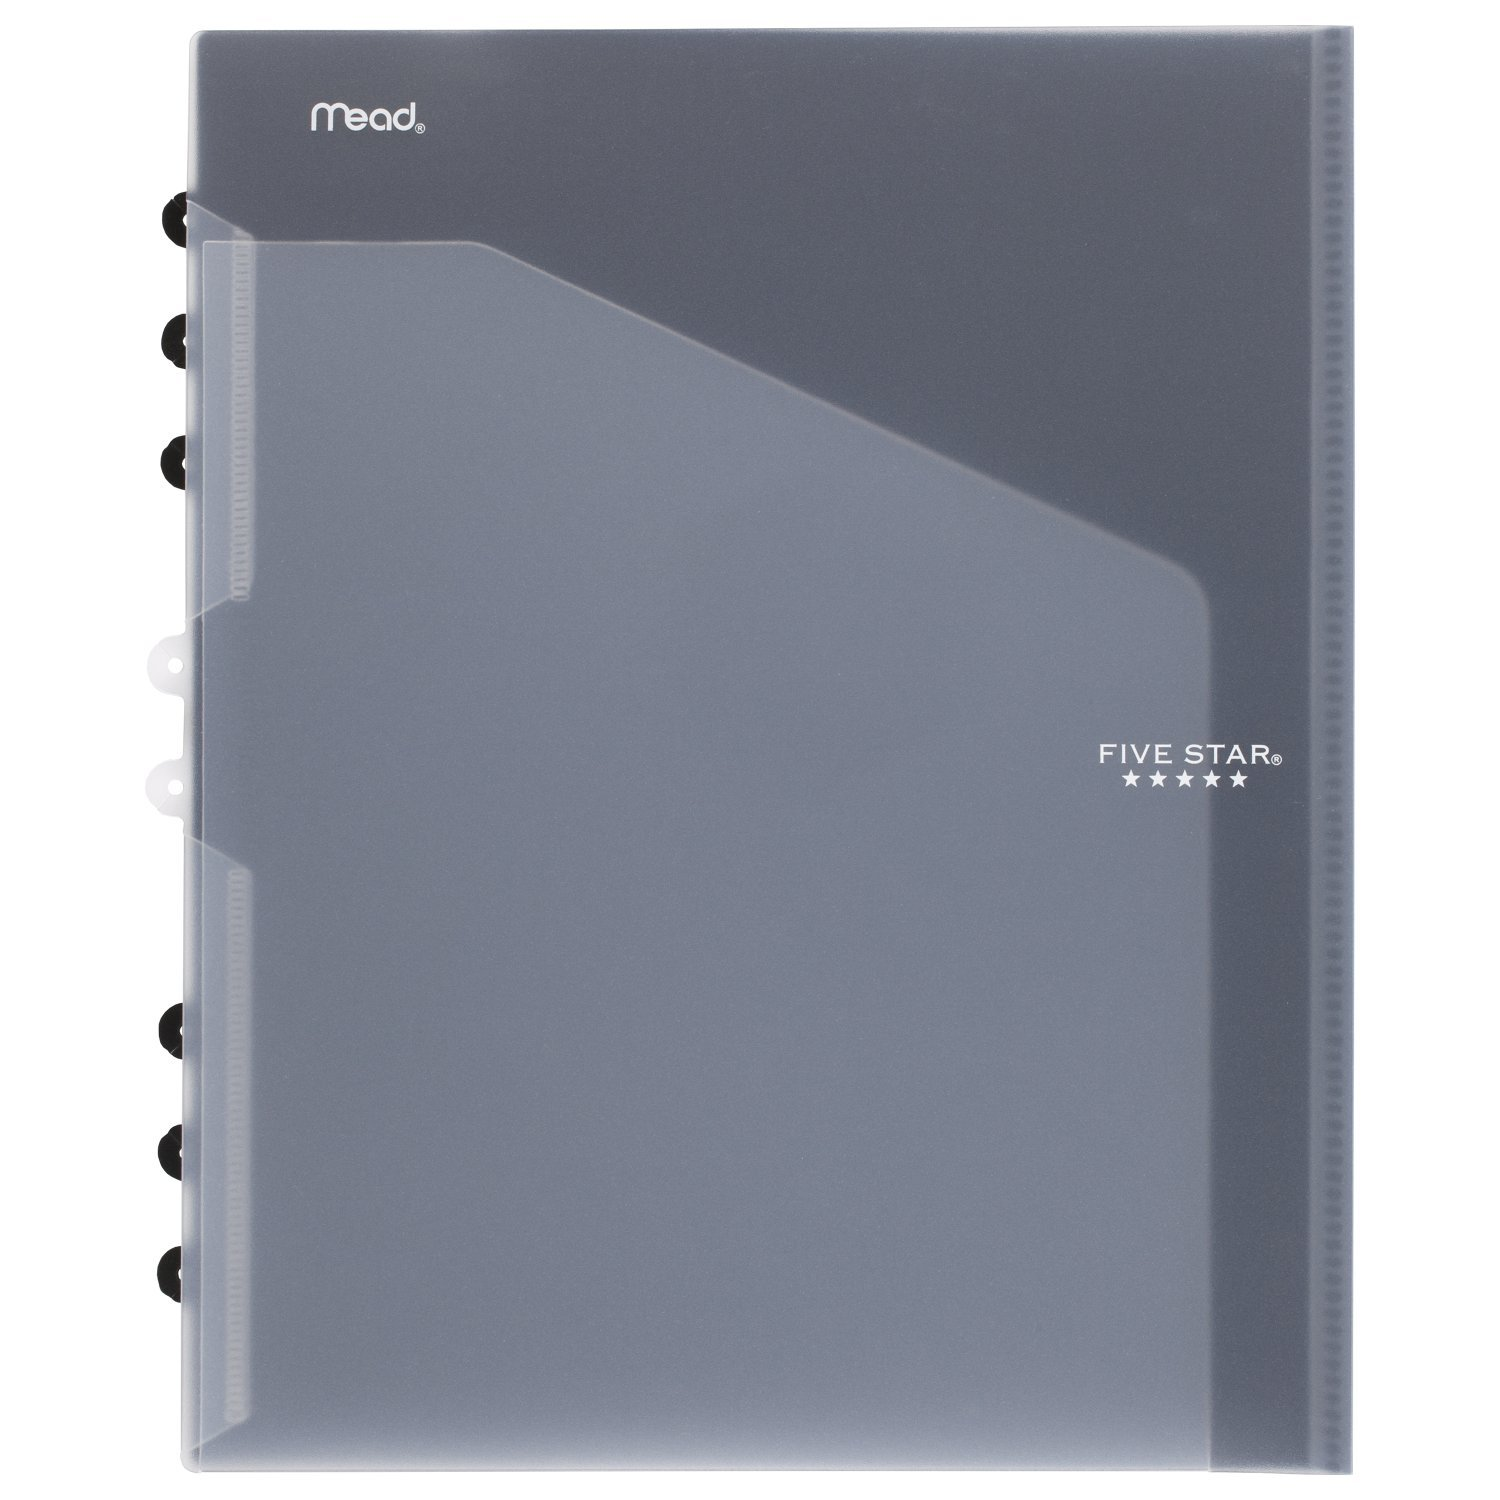 Five Star 2-Pocket Folder, Add-A-Folder, Fits Notebooks and 3 Ring Binder, Customizable, Color Will Vary (81216)